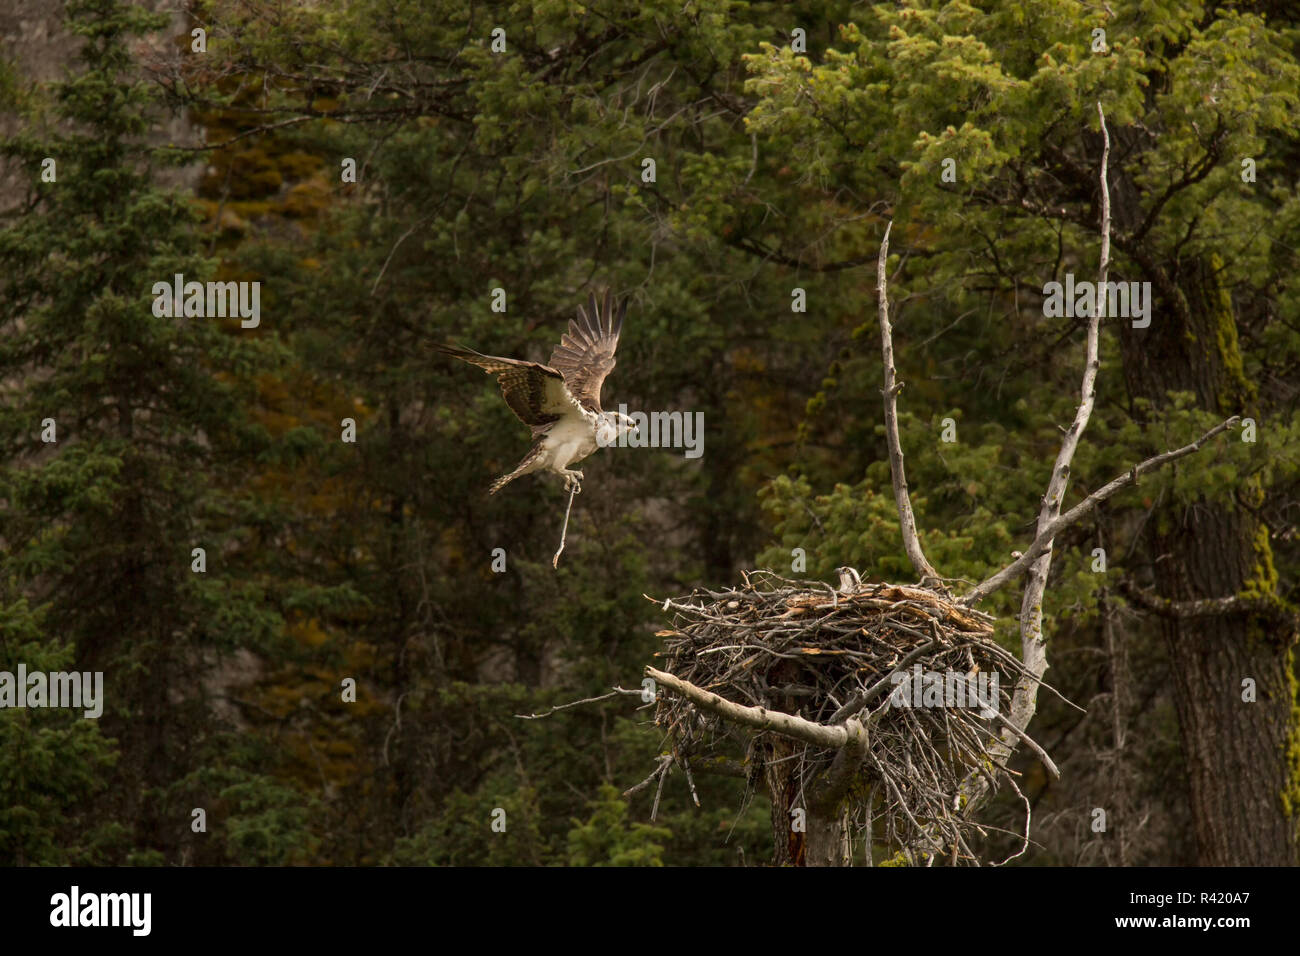 USA, Wyoming, Yellowstone National Park. Osprey lands with nesting material. Credit as: Don Grall / Jaynes Gallery / DanitaDelimont. com - Stock Image